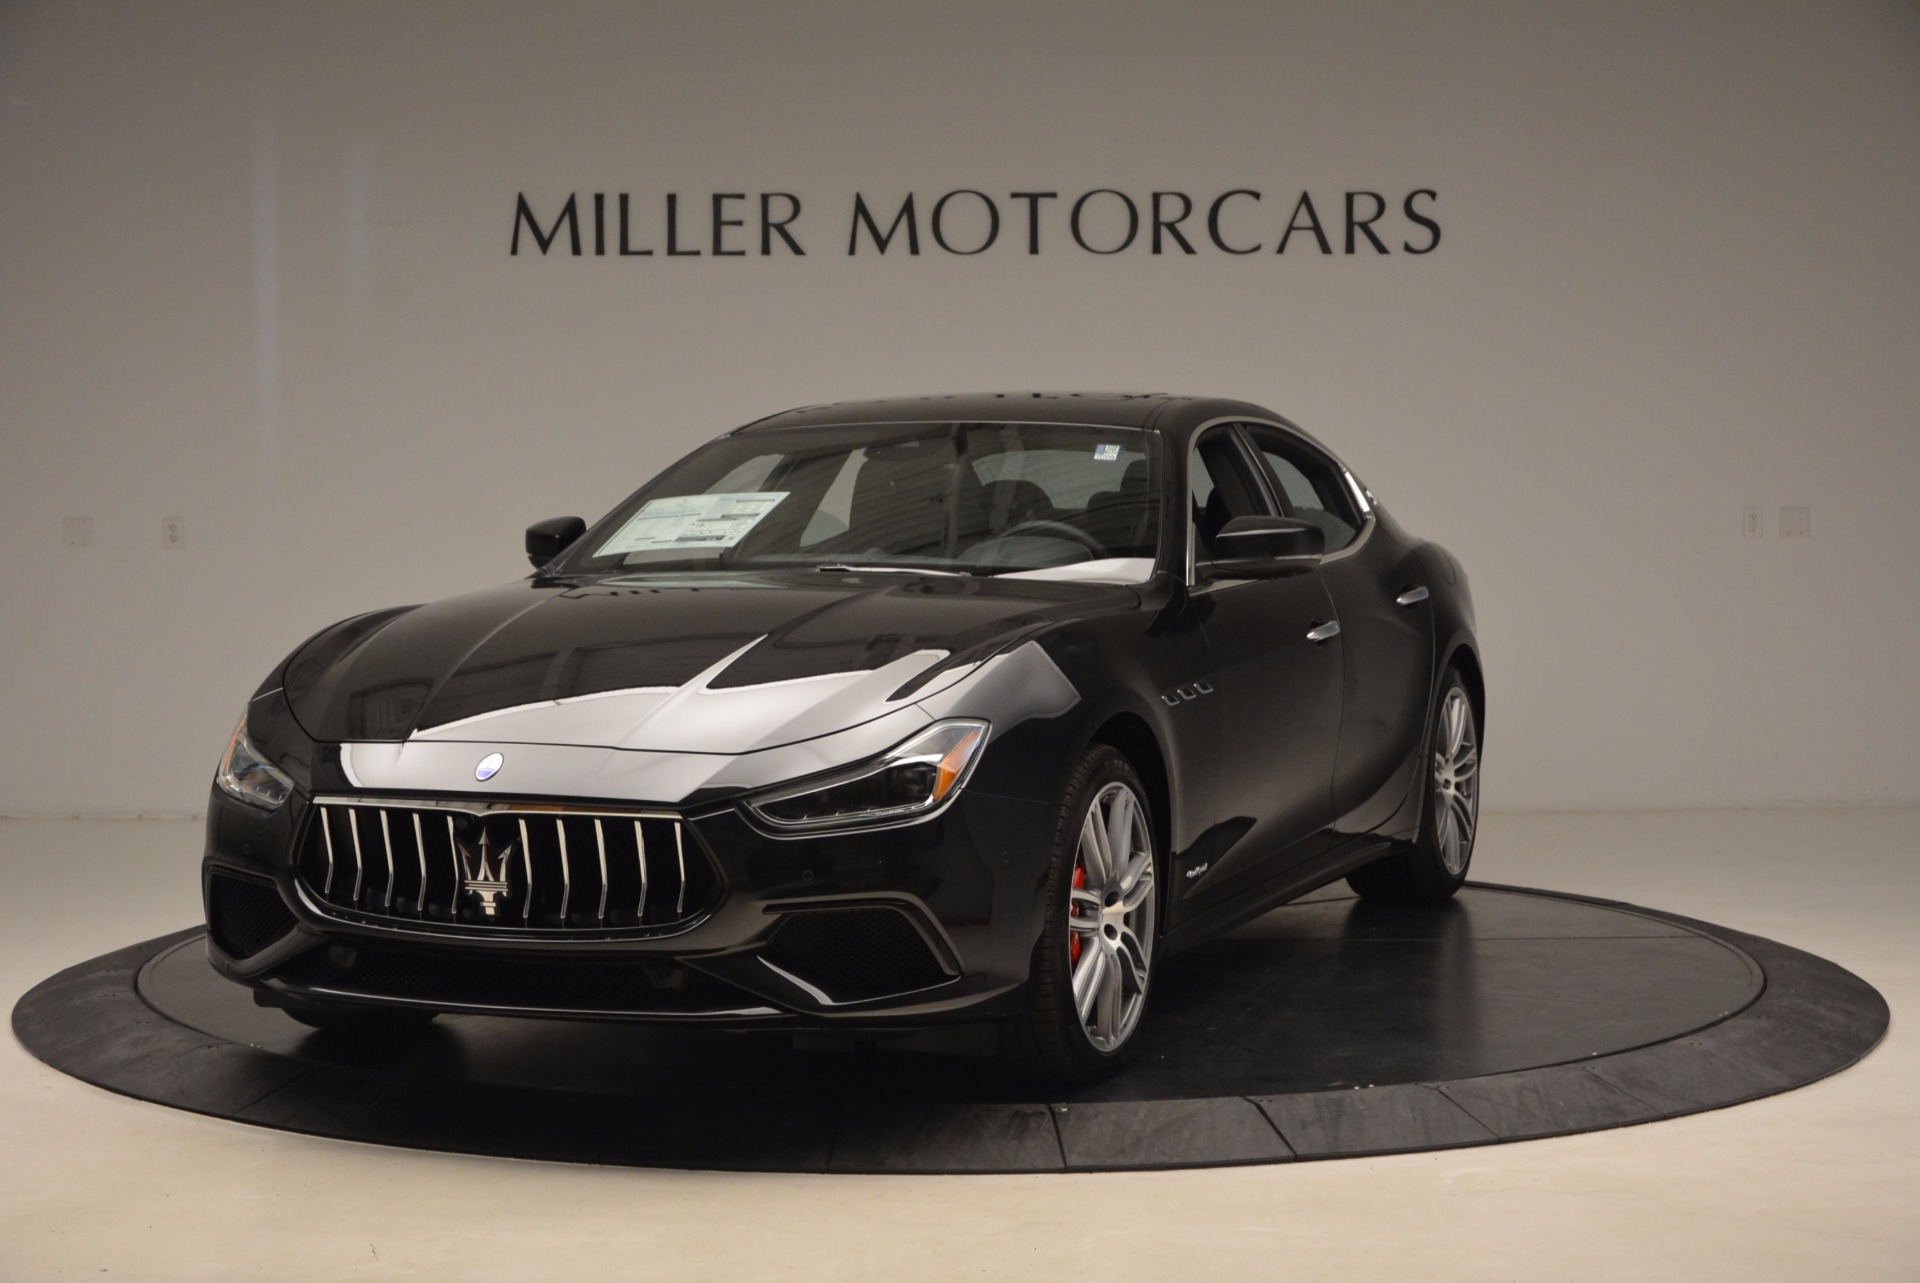 New 2018 Maserati Ghibli S Q4 Gransport for sale Sold at Pagani of Greenwich in Greenwich CT 06830 1